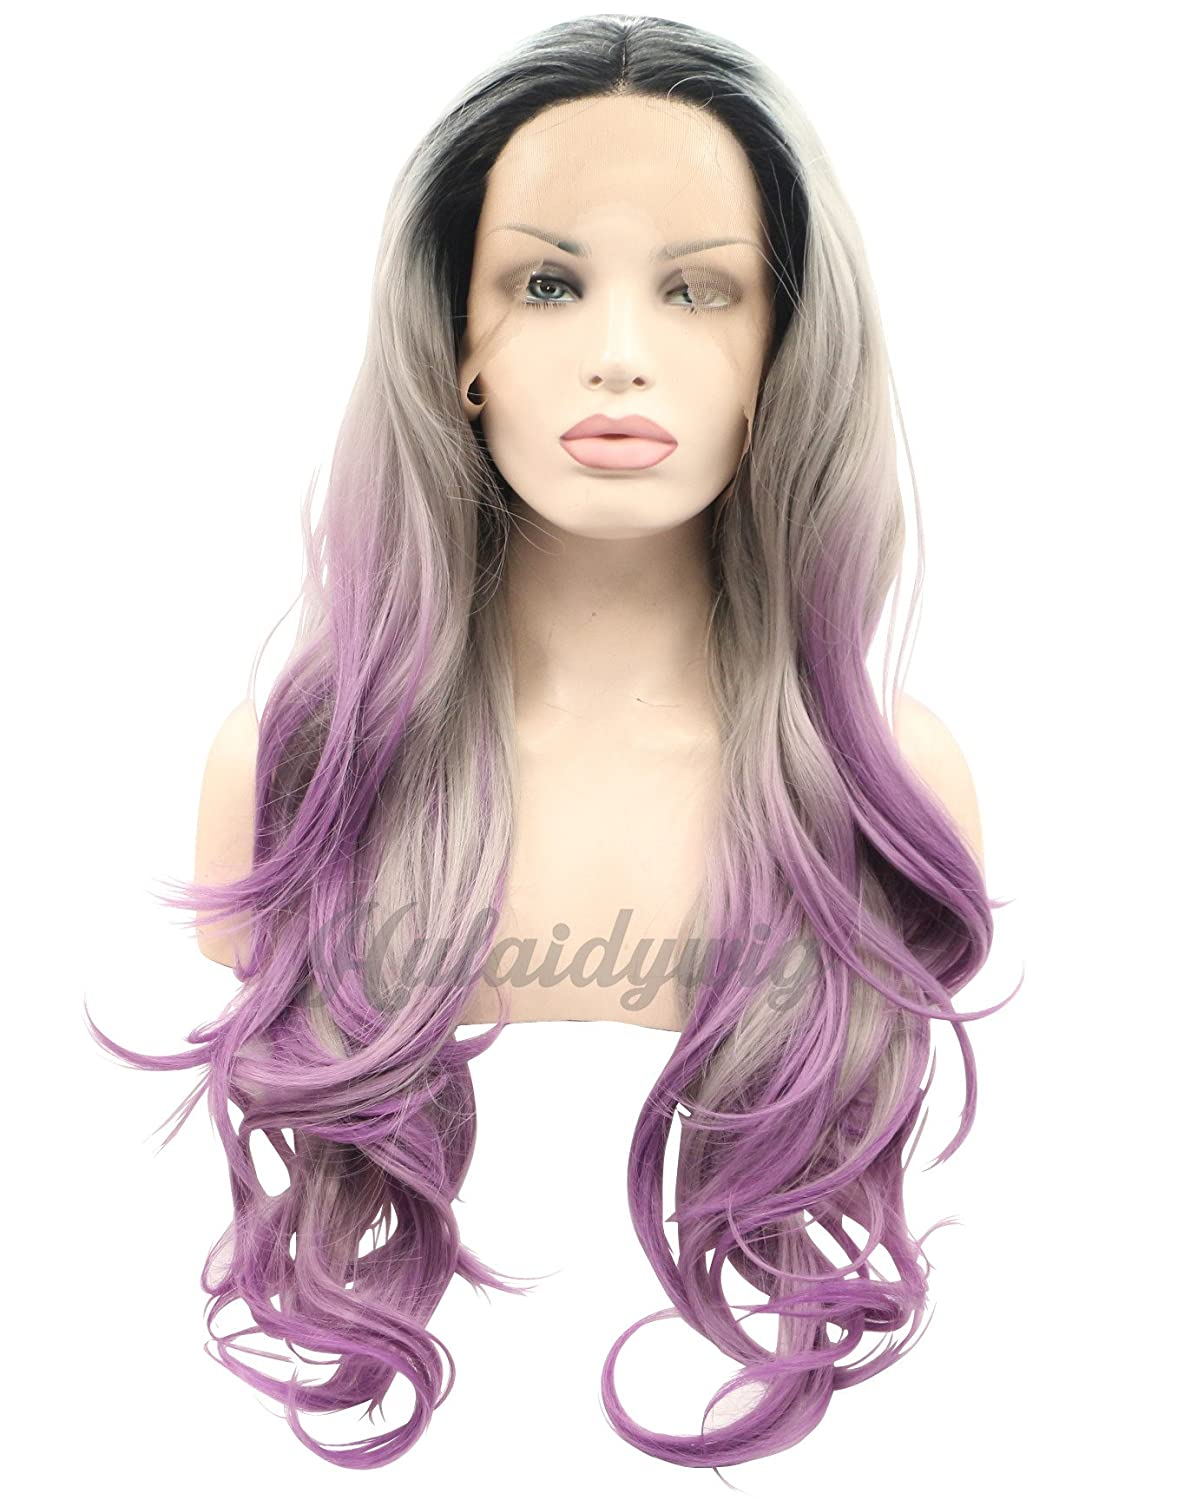 12d1df164 Amazon.com : Hulaidywig Women's Gray Purple Ombre Long Wavy Synthetic Lace  Front Wigs with Dark Roots Natural Full Hair : Beauty